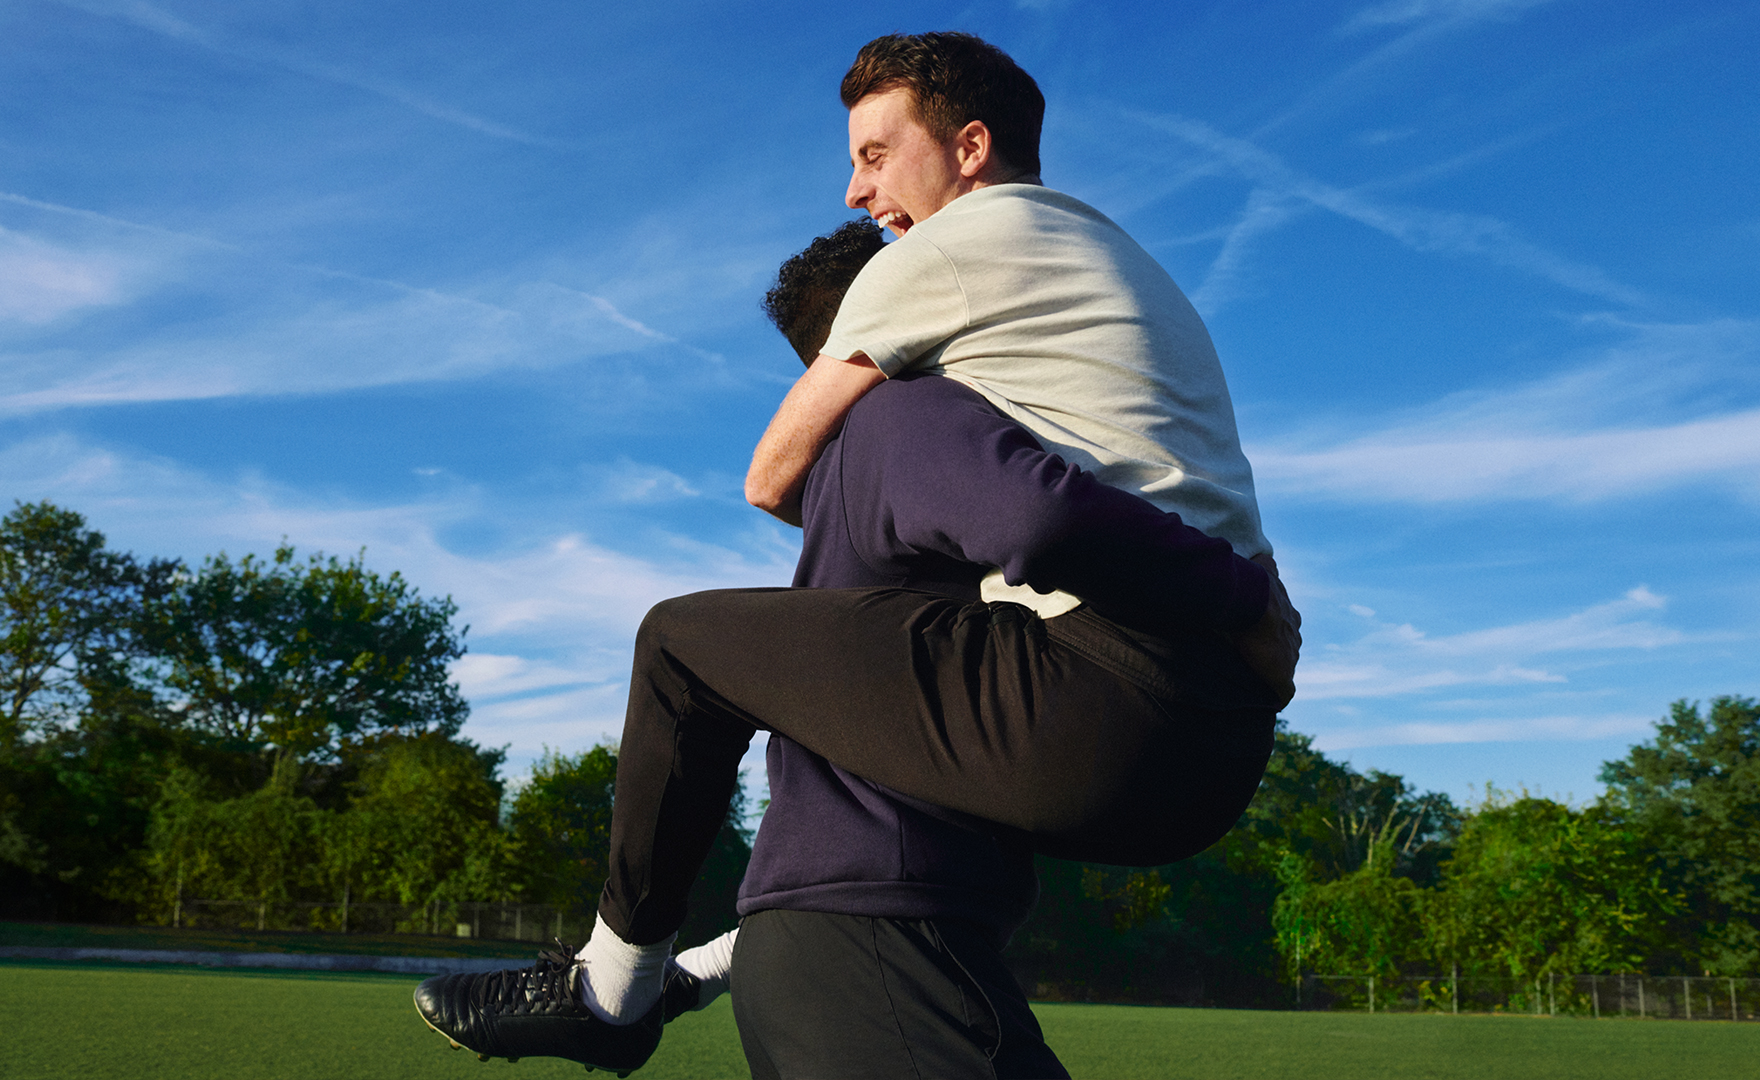 two young adult male adult soccer players outdoors embracing with elation